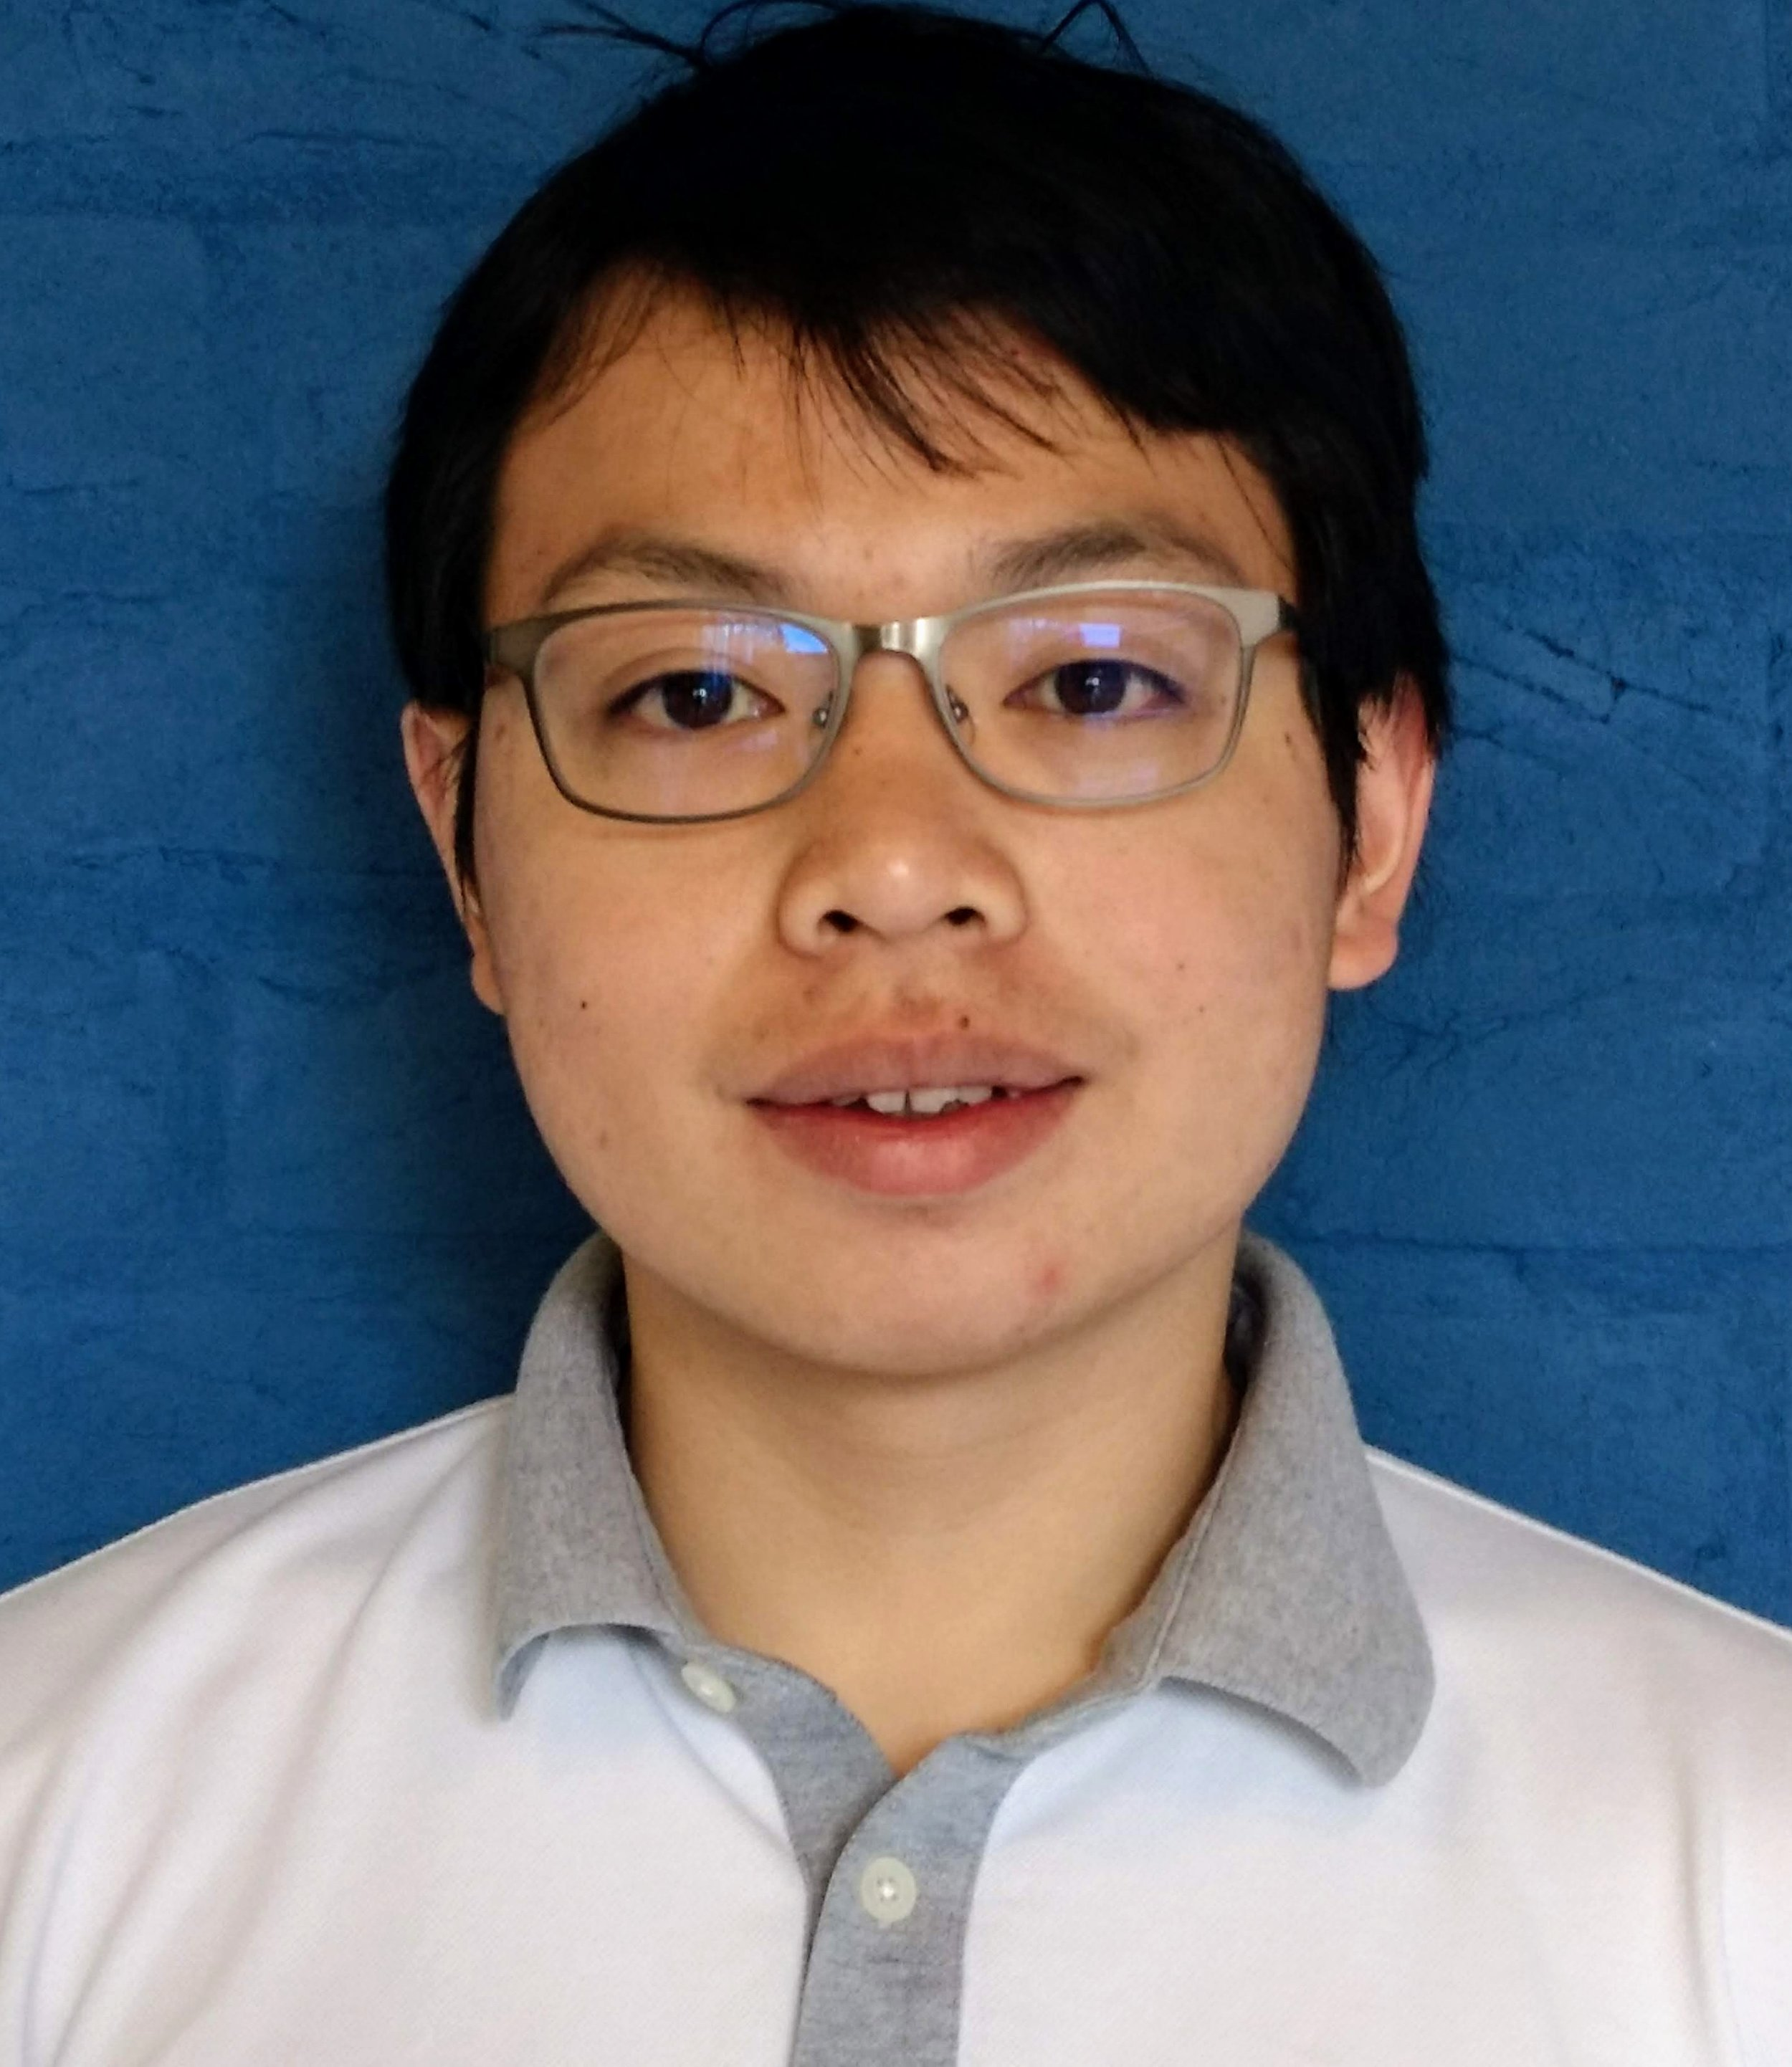 - Scheon Ziyang Cao is a  second year engineering student at the University of Cambridge. I am currently working on a summer project on designing a workflow on producing custom orthotics for dogs using 3D scanning and printing technology, under the joint supervision of Professor Matthew Allen and Professor Michael Sutcliffe of the Engineering Department.